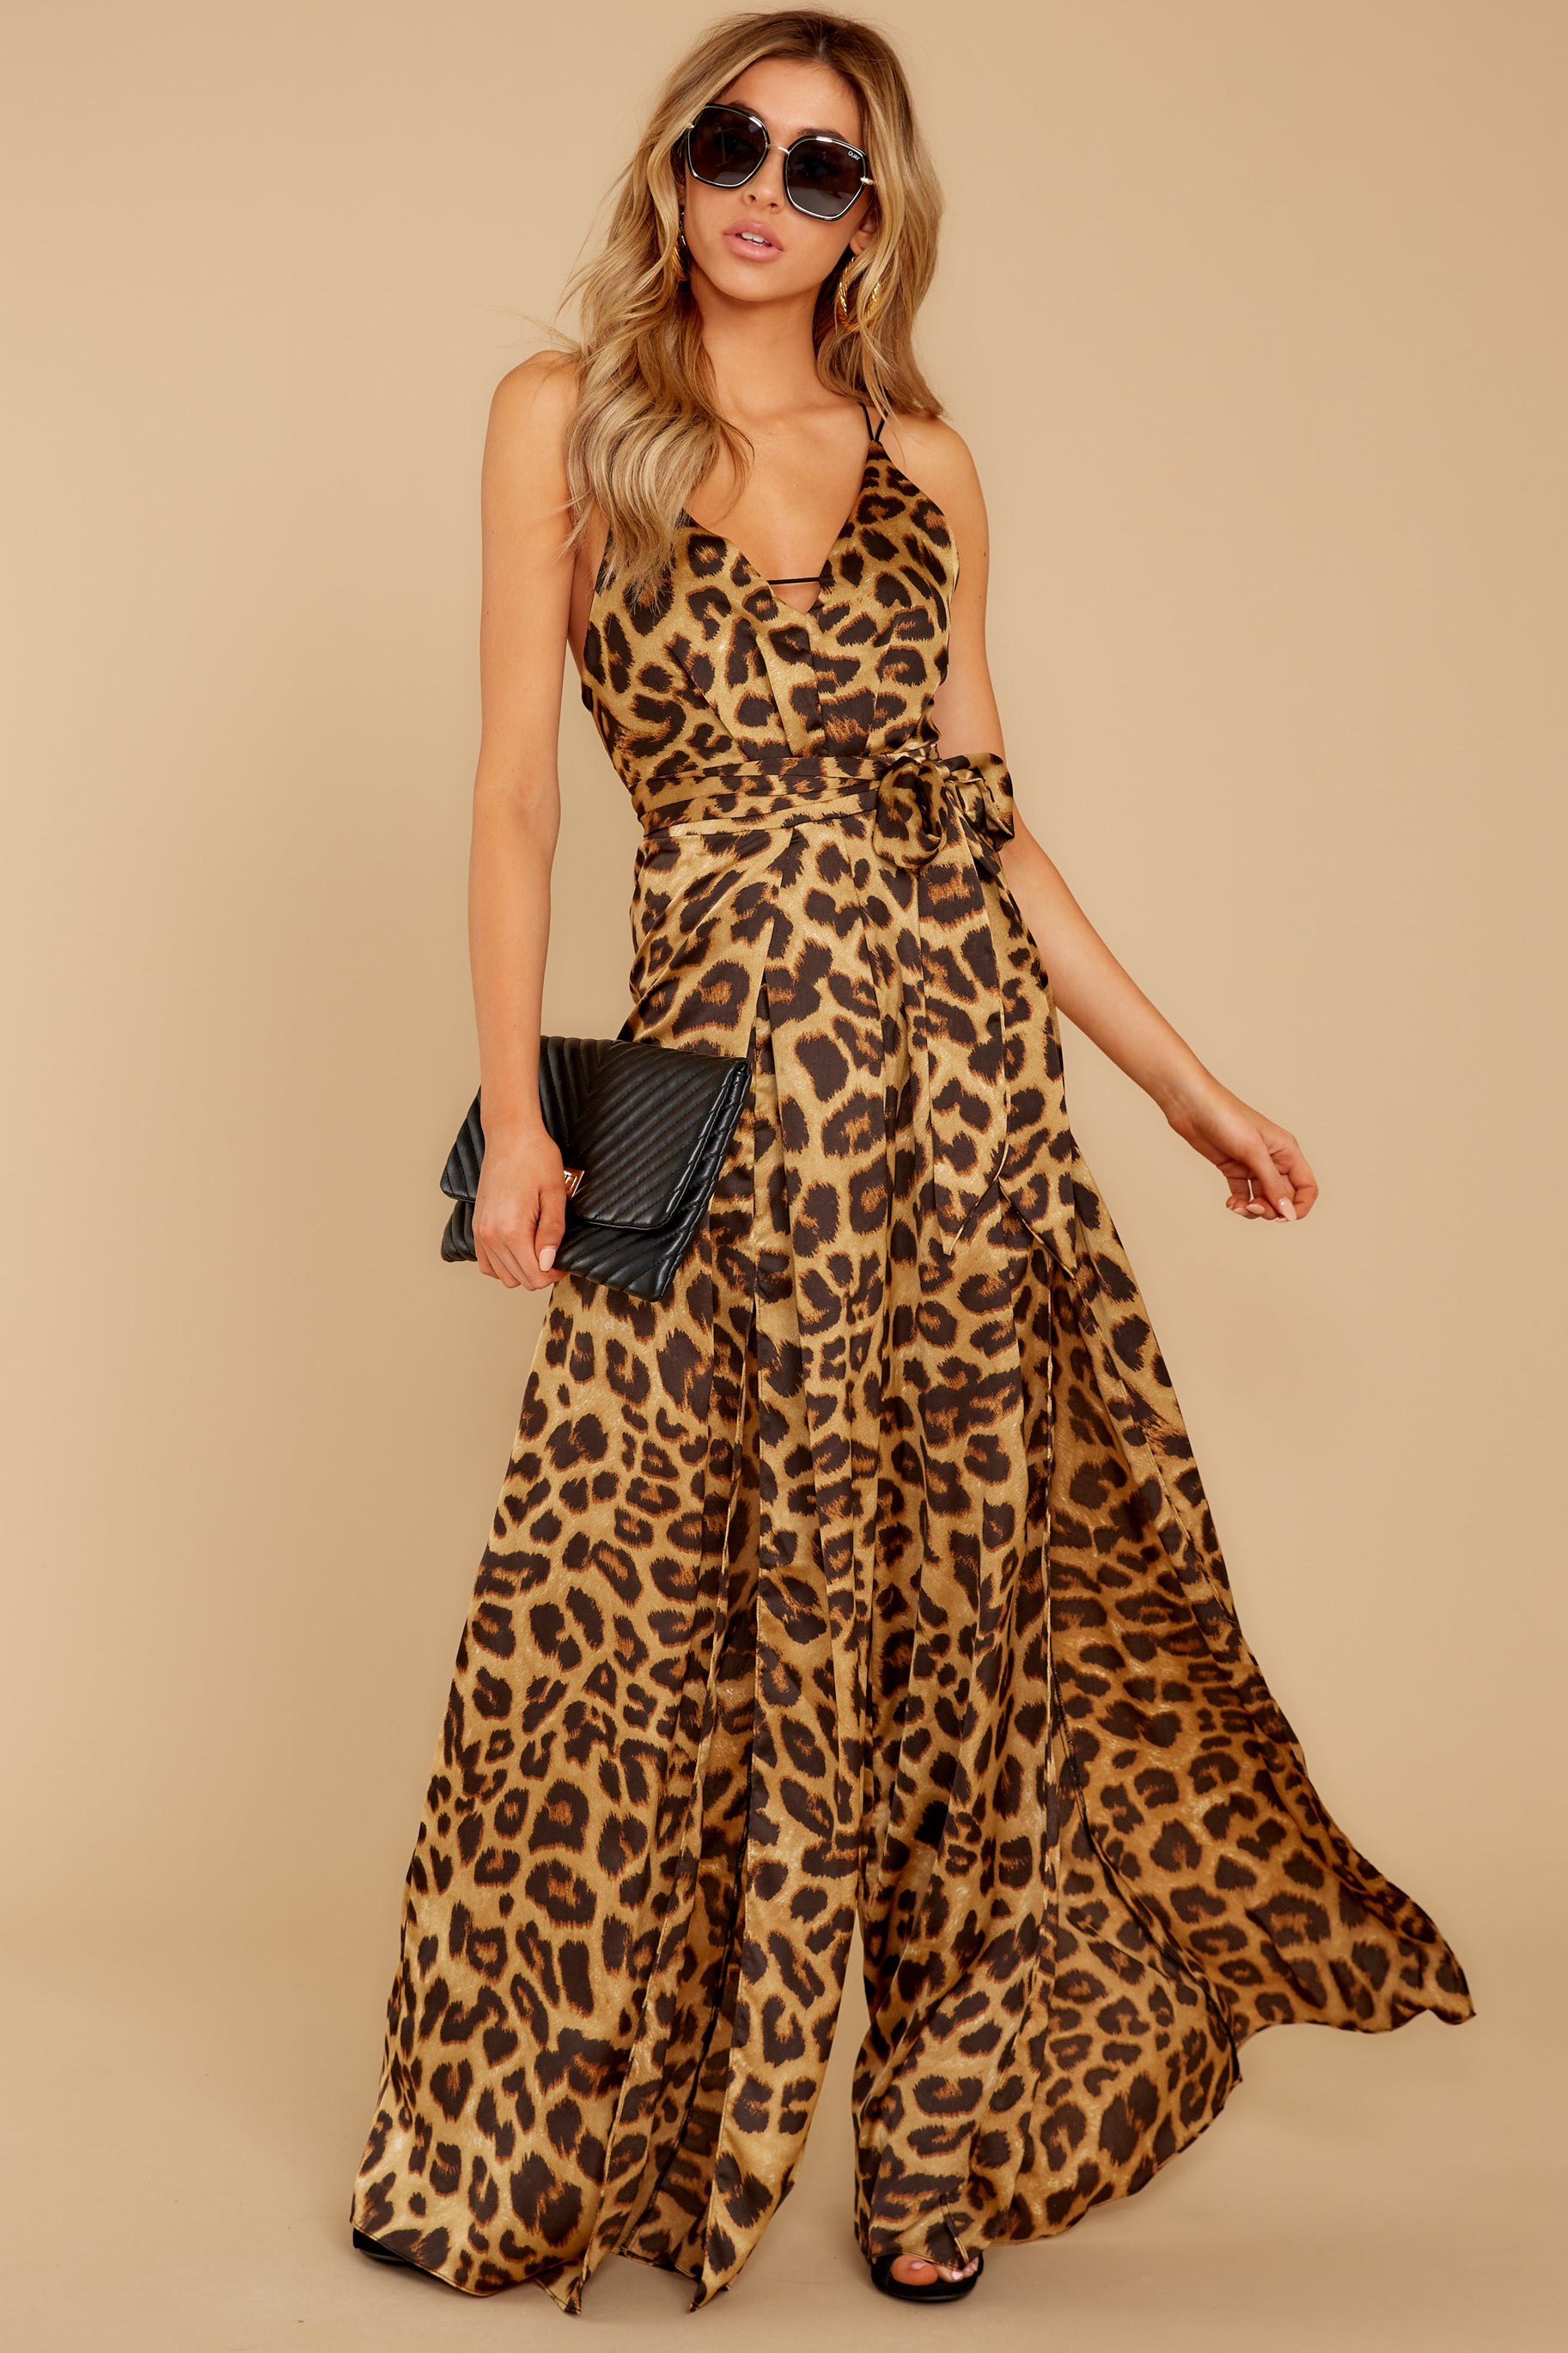 70s Jumpsuit | Disco Jumpsuits, Sequin Rompers Shes Dangerous Leopard Print Jumpsuit Brown $32.00 AT vintagedancer.com